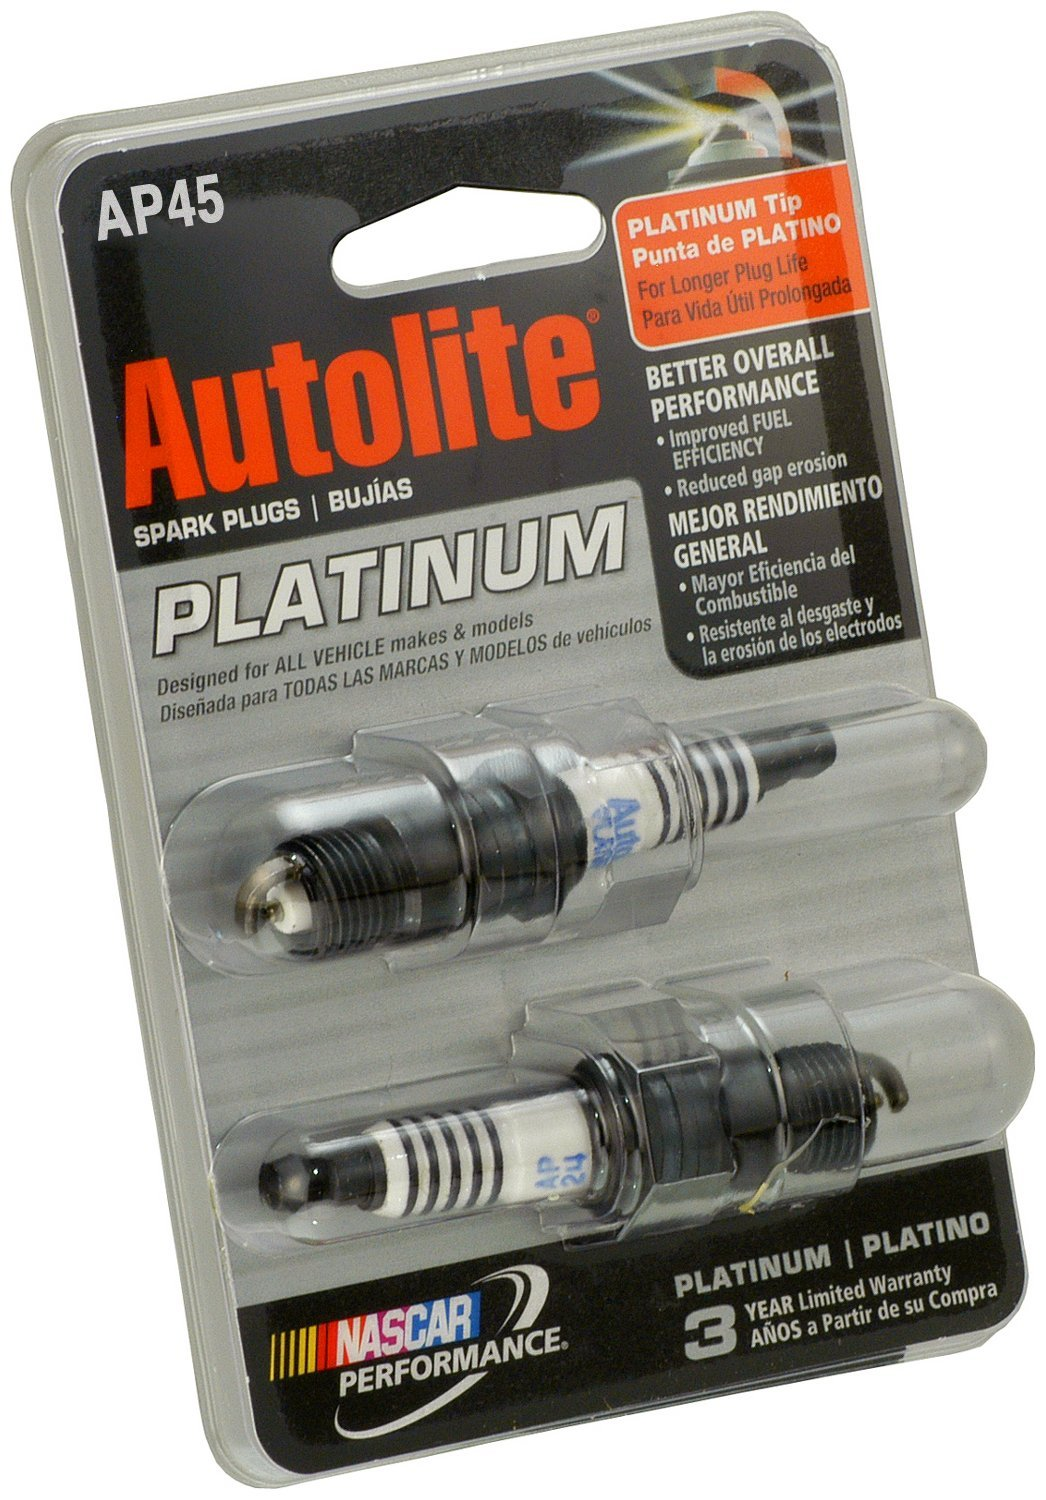 Amazon.com: Autolite 45DP2 Copper Resistor Spark Plug (Pack of 2): Automotive